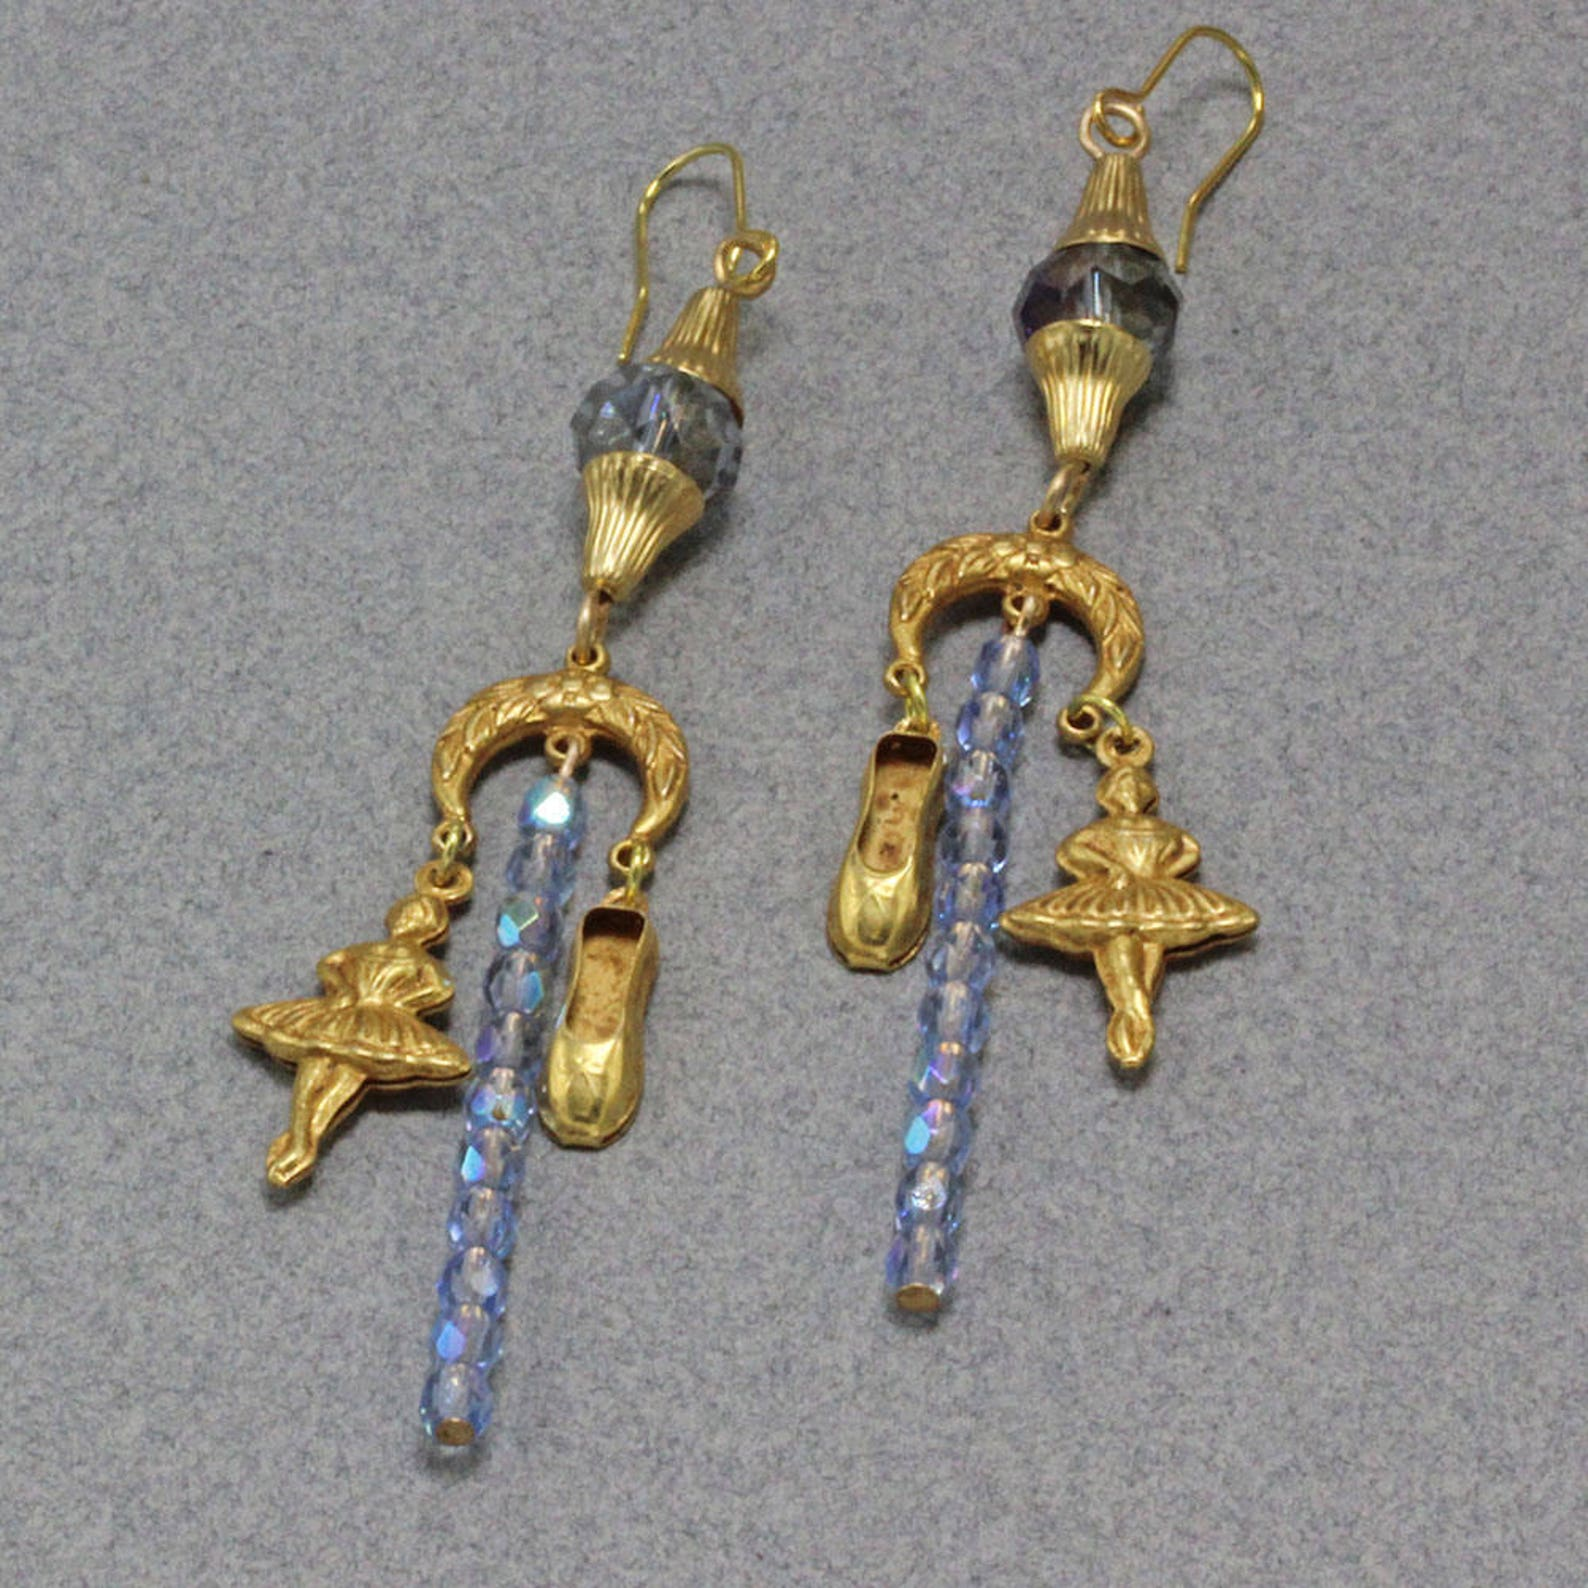 hand assembled earrings gold finish brass ballerinas and ballet shoes nights at the ballet earrings blue ab crystal beads gold p